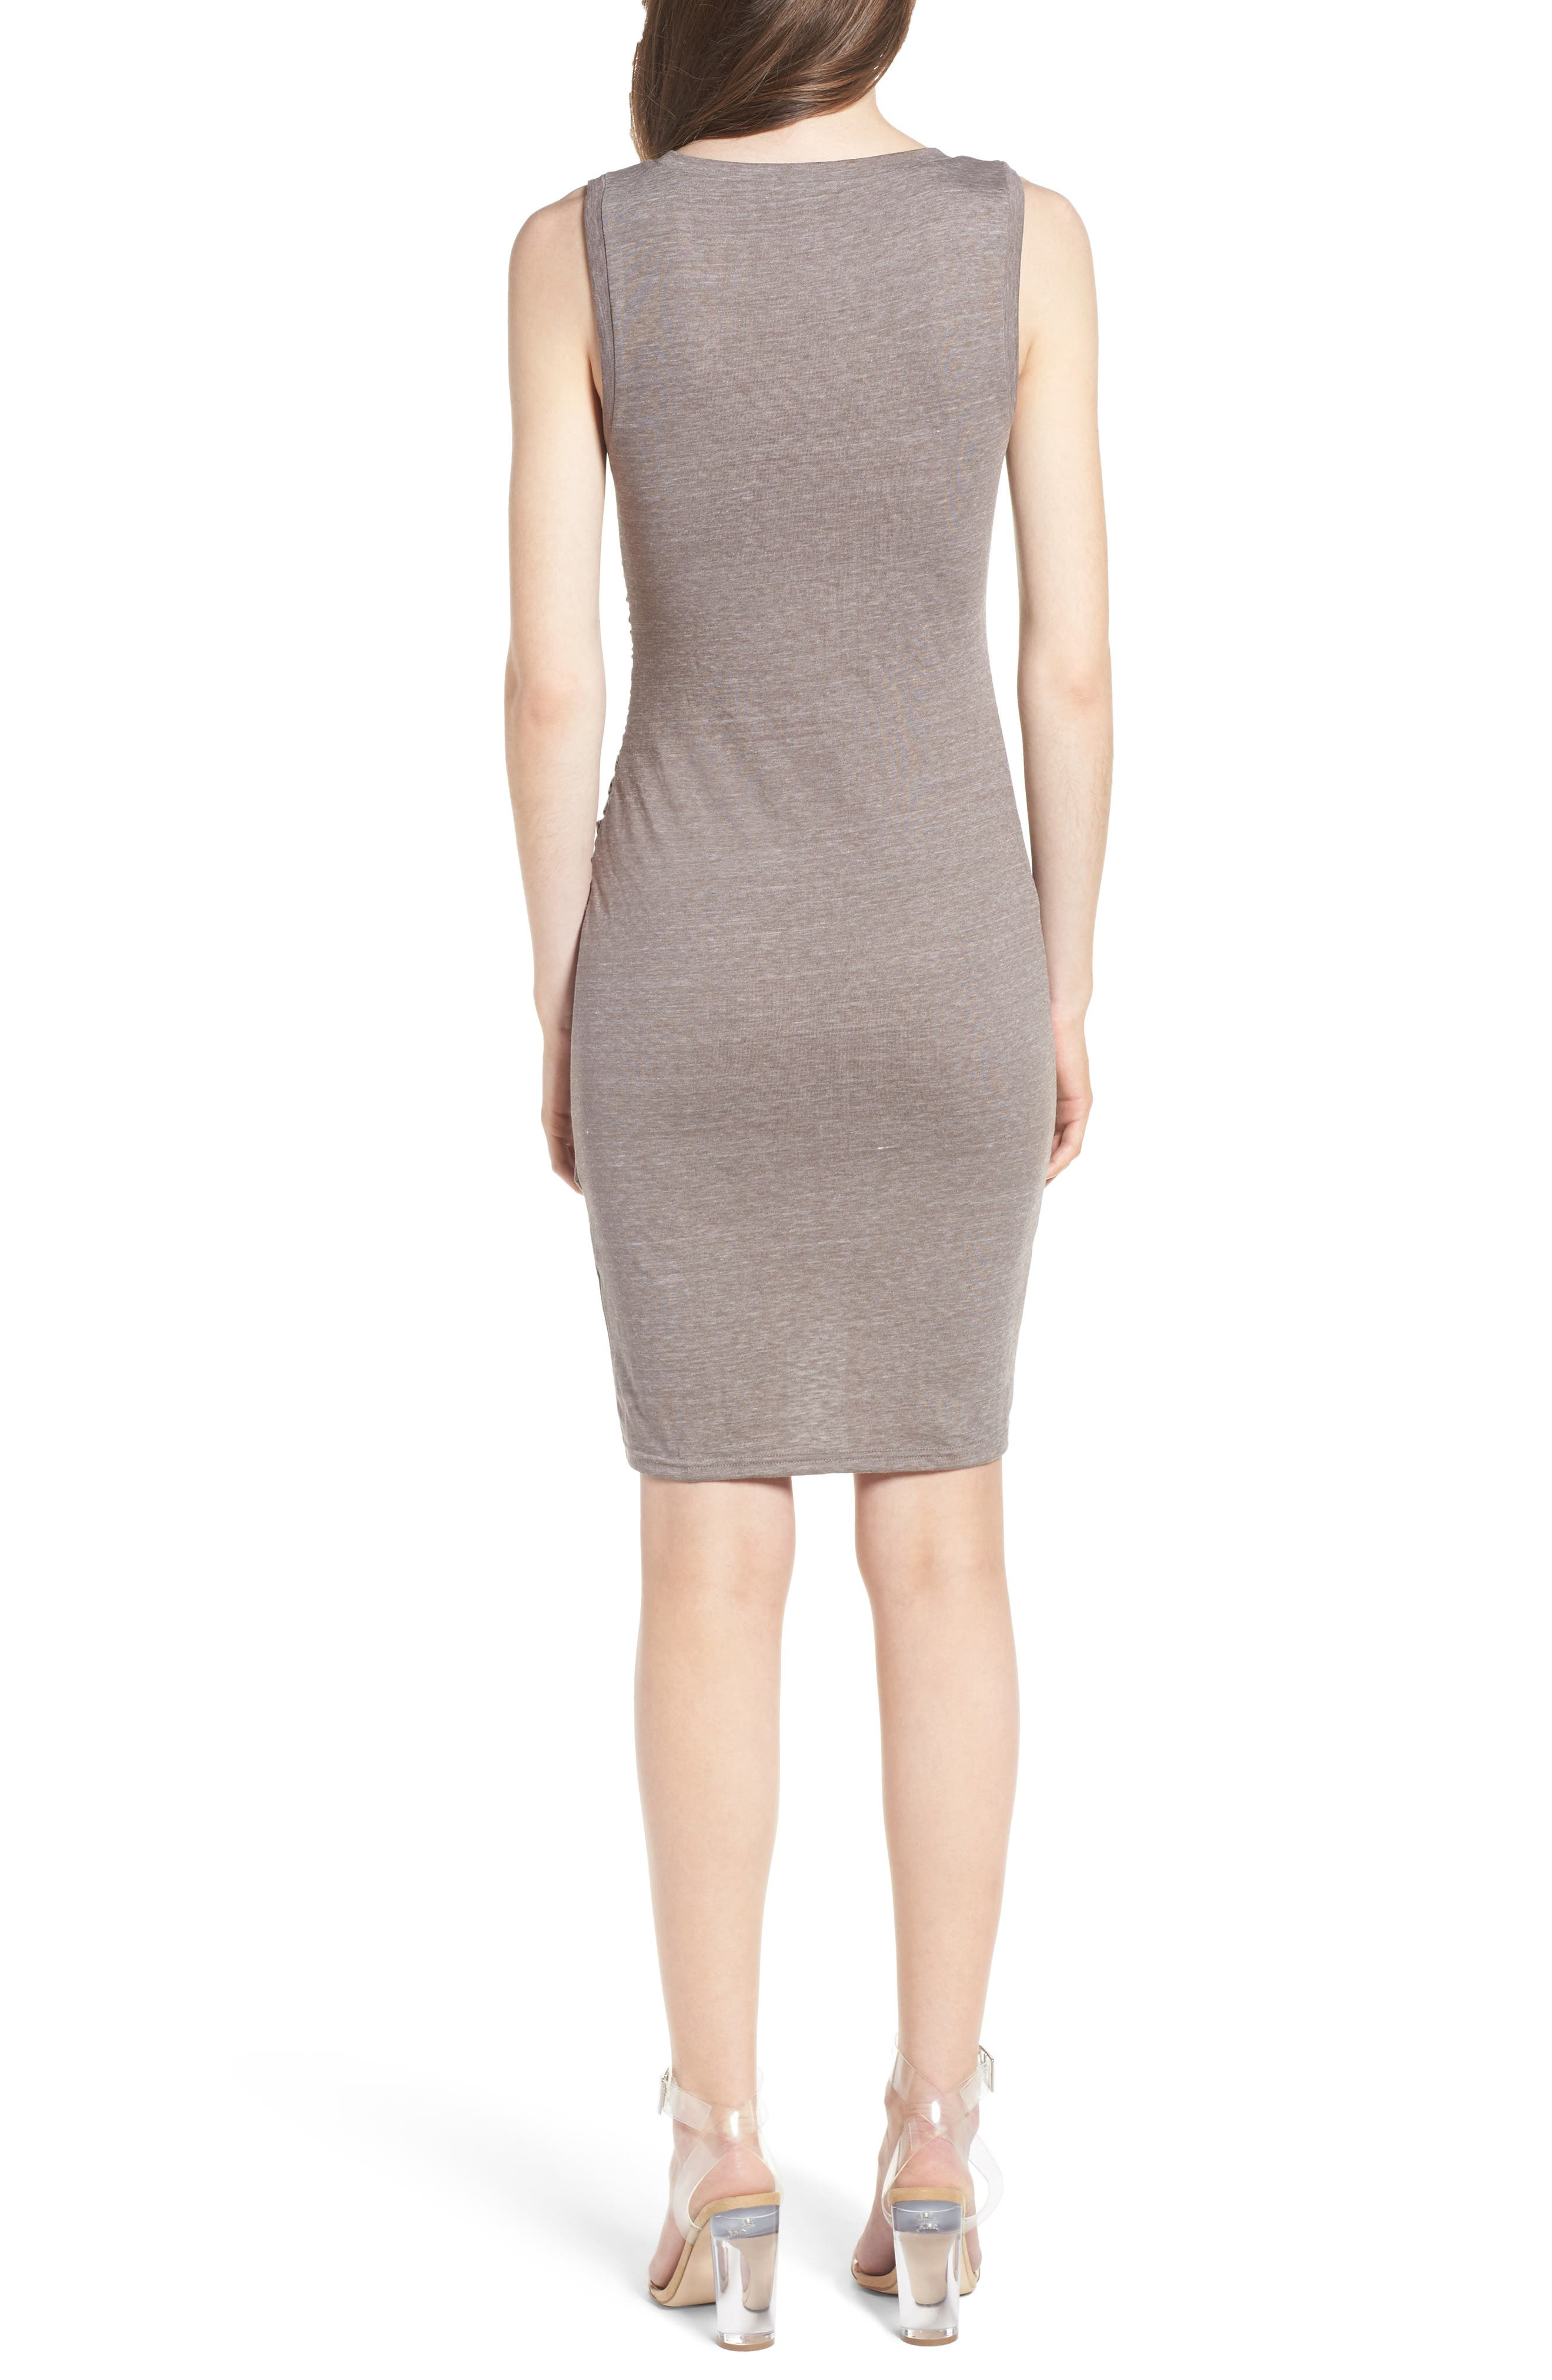 Ruched Body-Con Tank Dress,                             Alternate thumbnail 7, color,                             Tan Dusk Heather